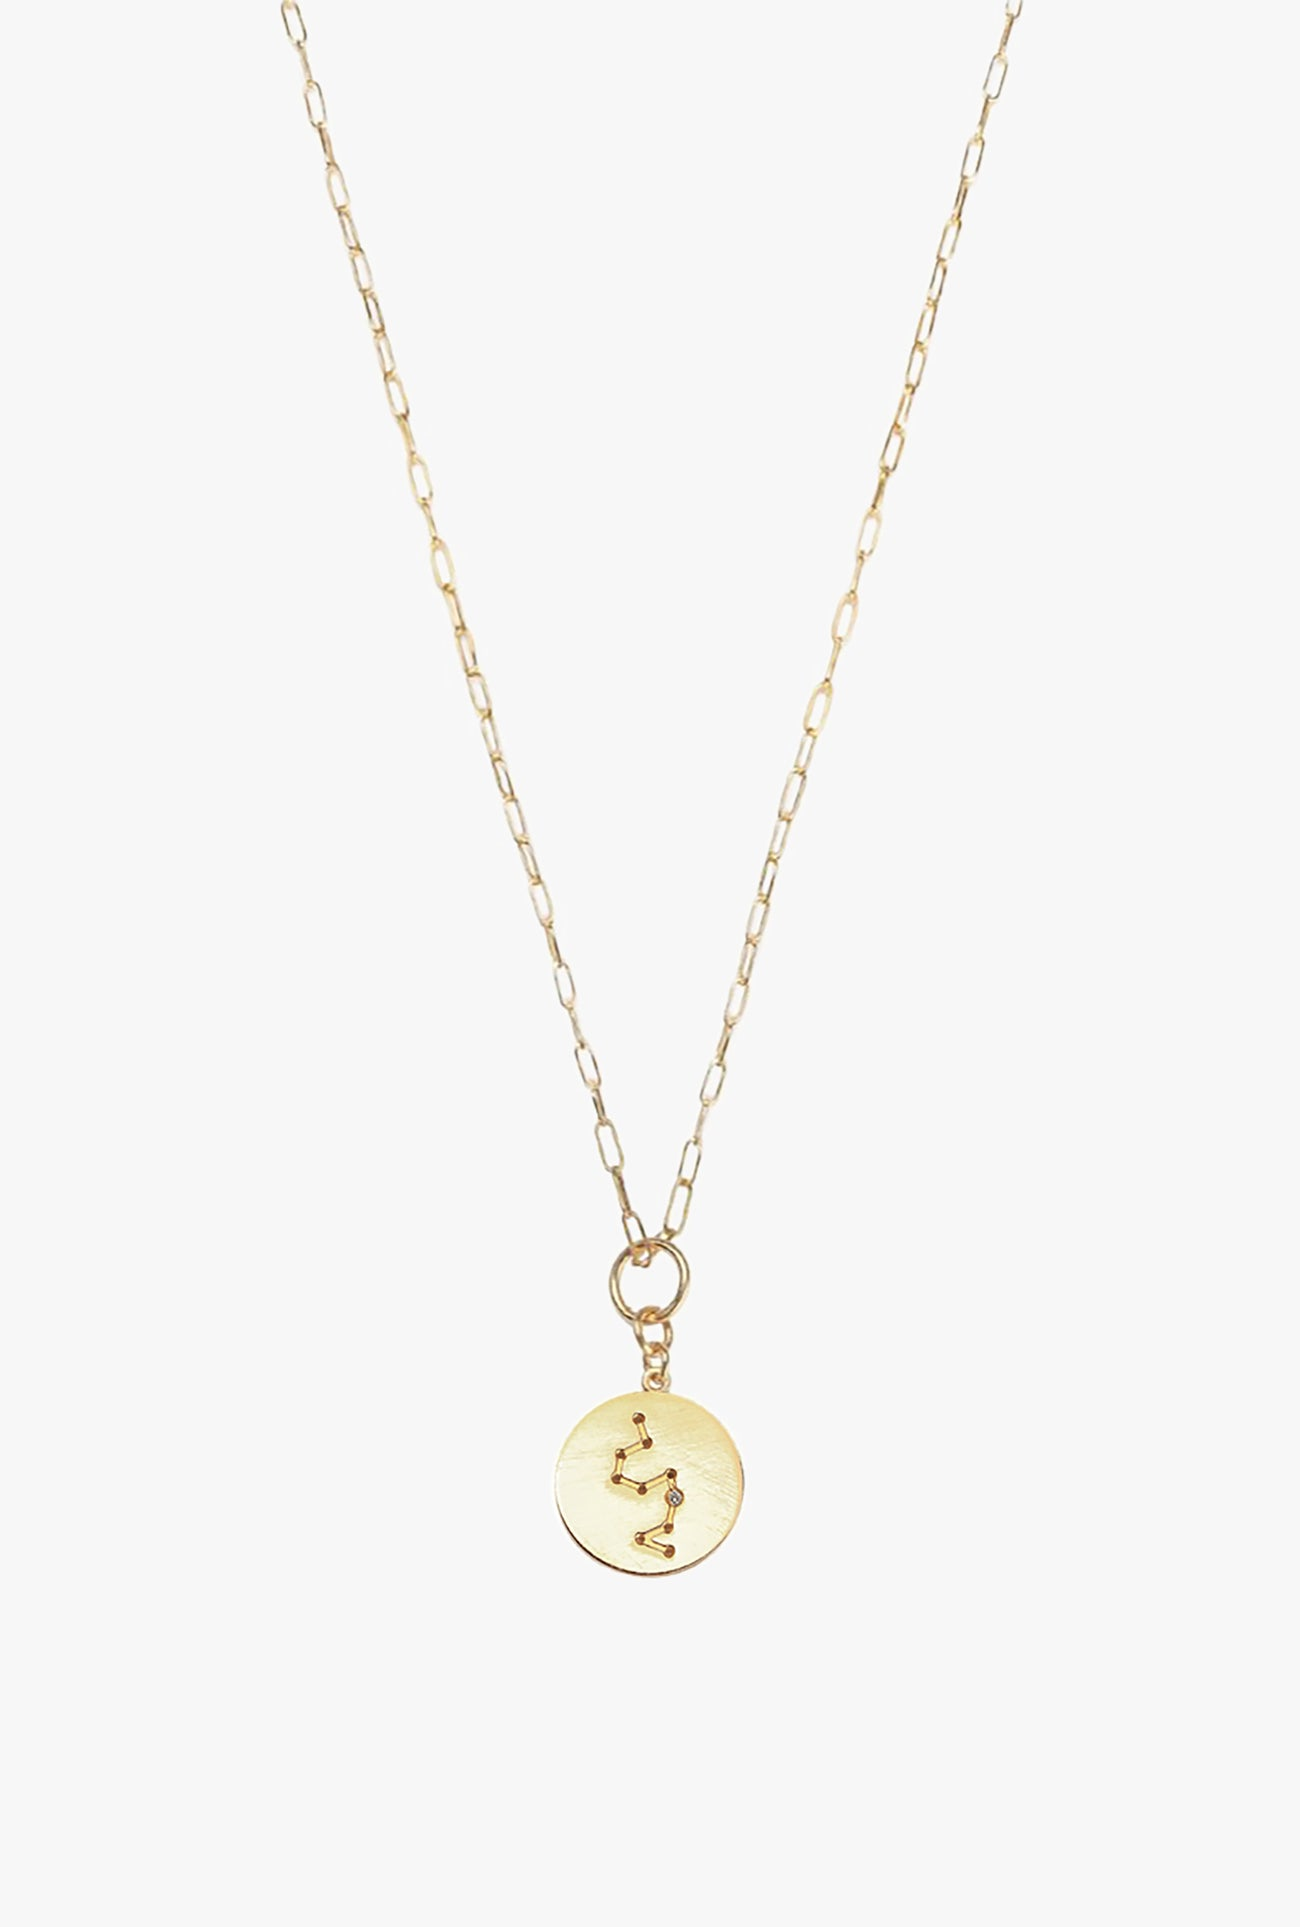 Constellation Leo Charm Necklace